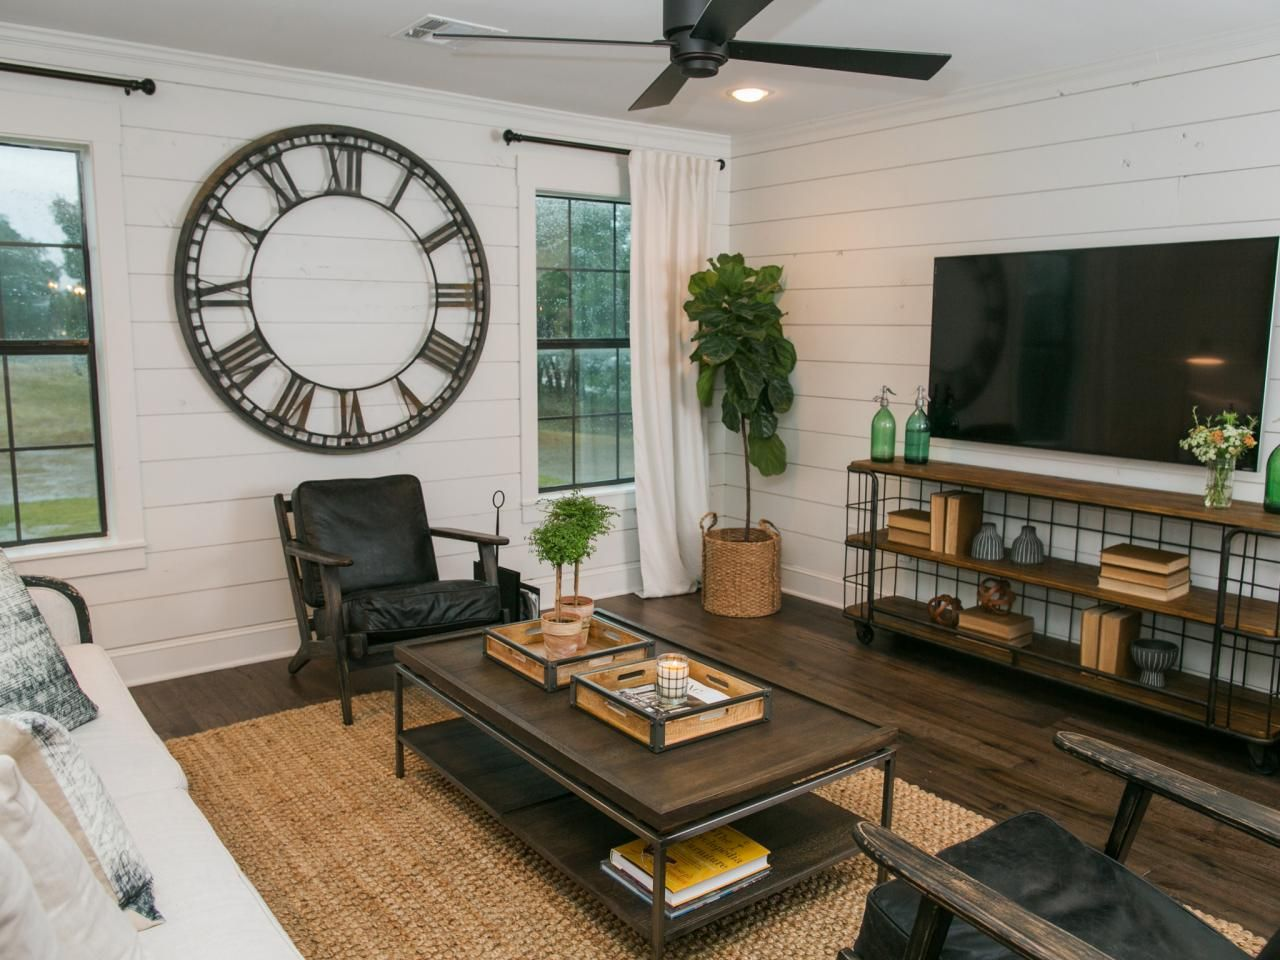 Fixer upper kitchen wall decor - Simple Open Design Walls Were Removed On The Second Floor To Create A Mixed Use Space That Incorporates Kitchen Dining And Living Areas Fixer Upper A Very